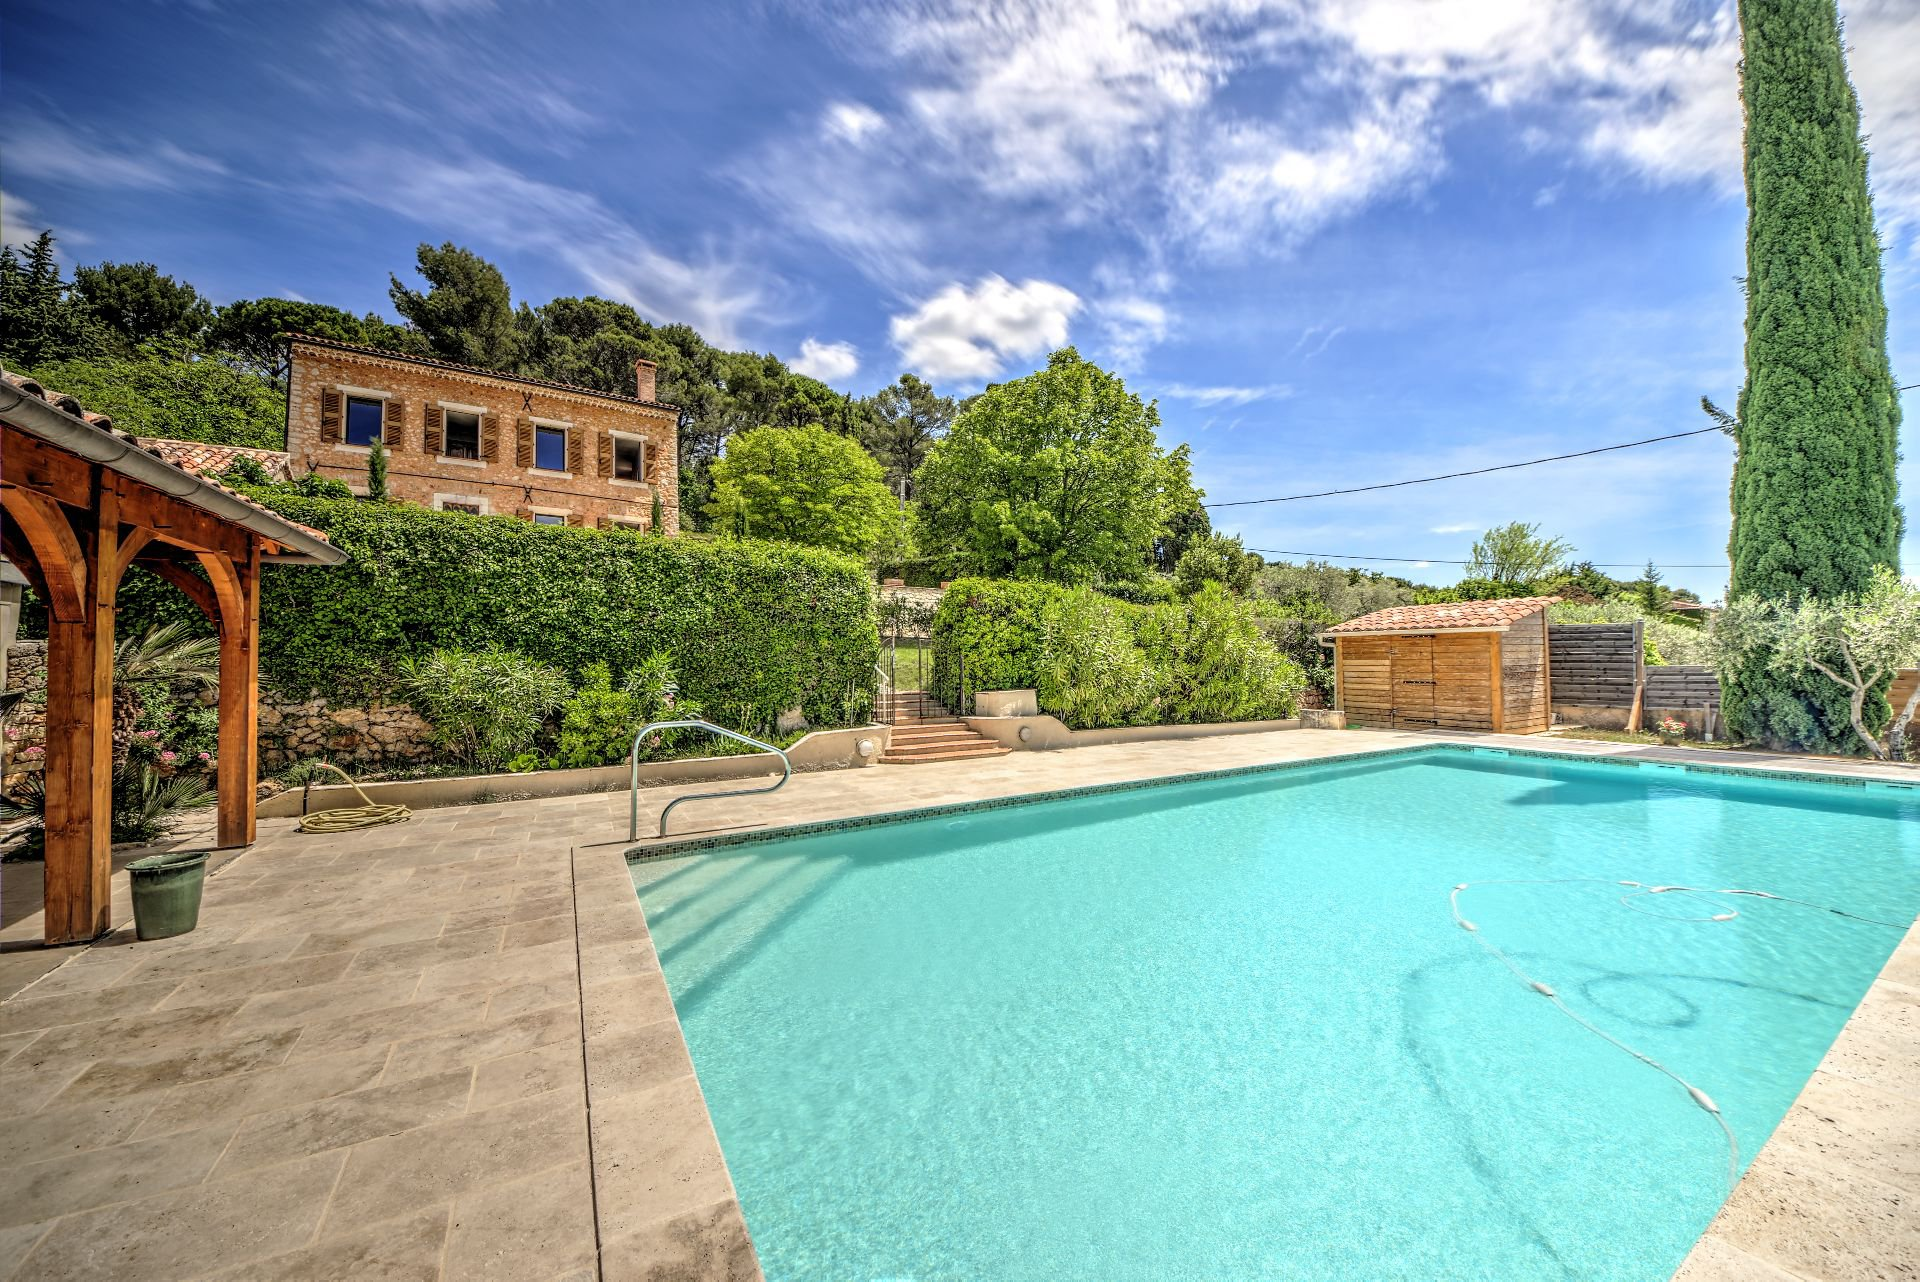 View of the pool from the house renovated 5 bedroom, 318 sqm, Aups, Var, Provence, Verdon